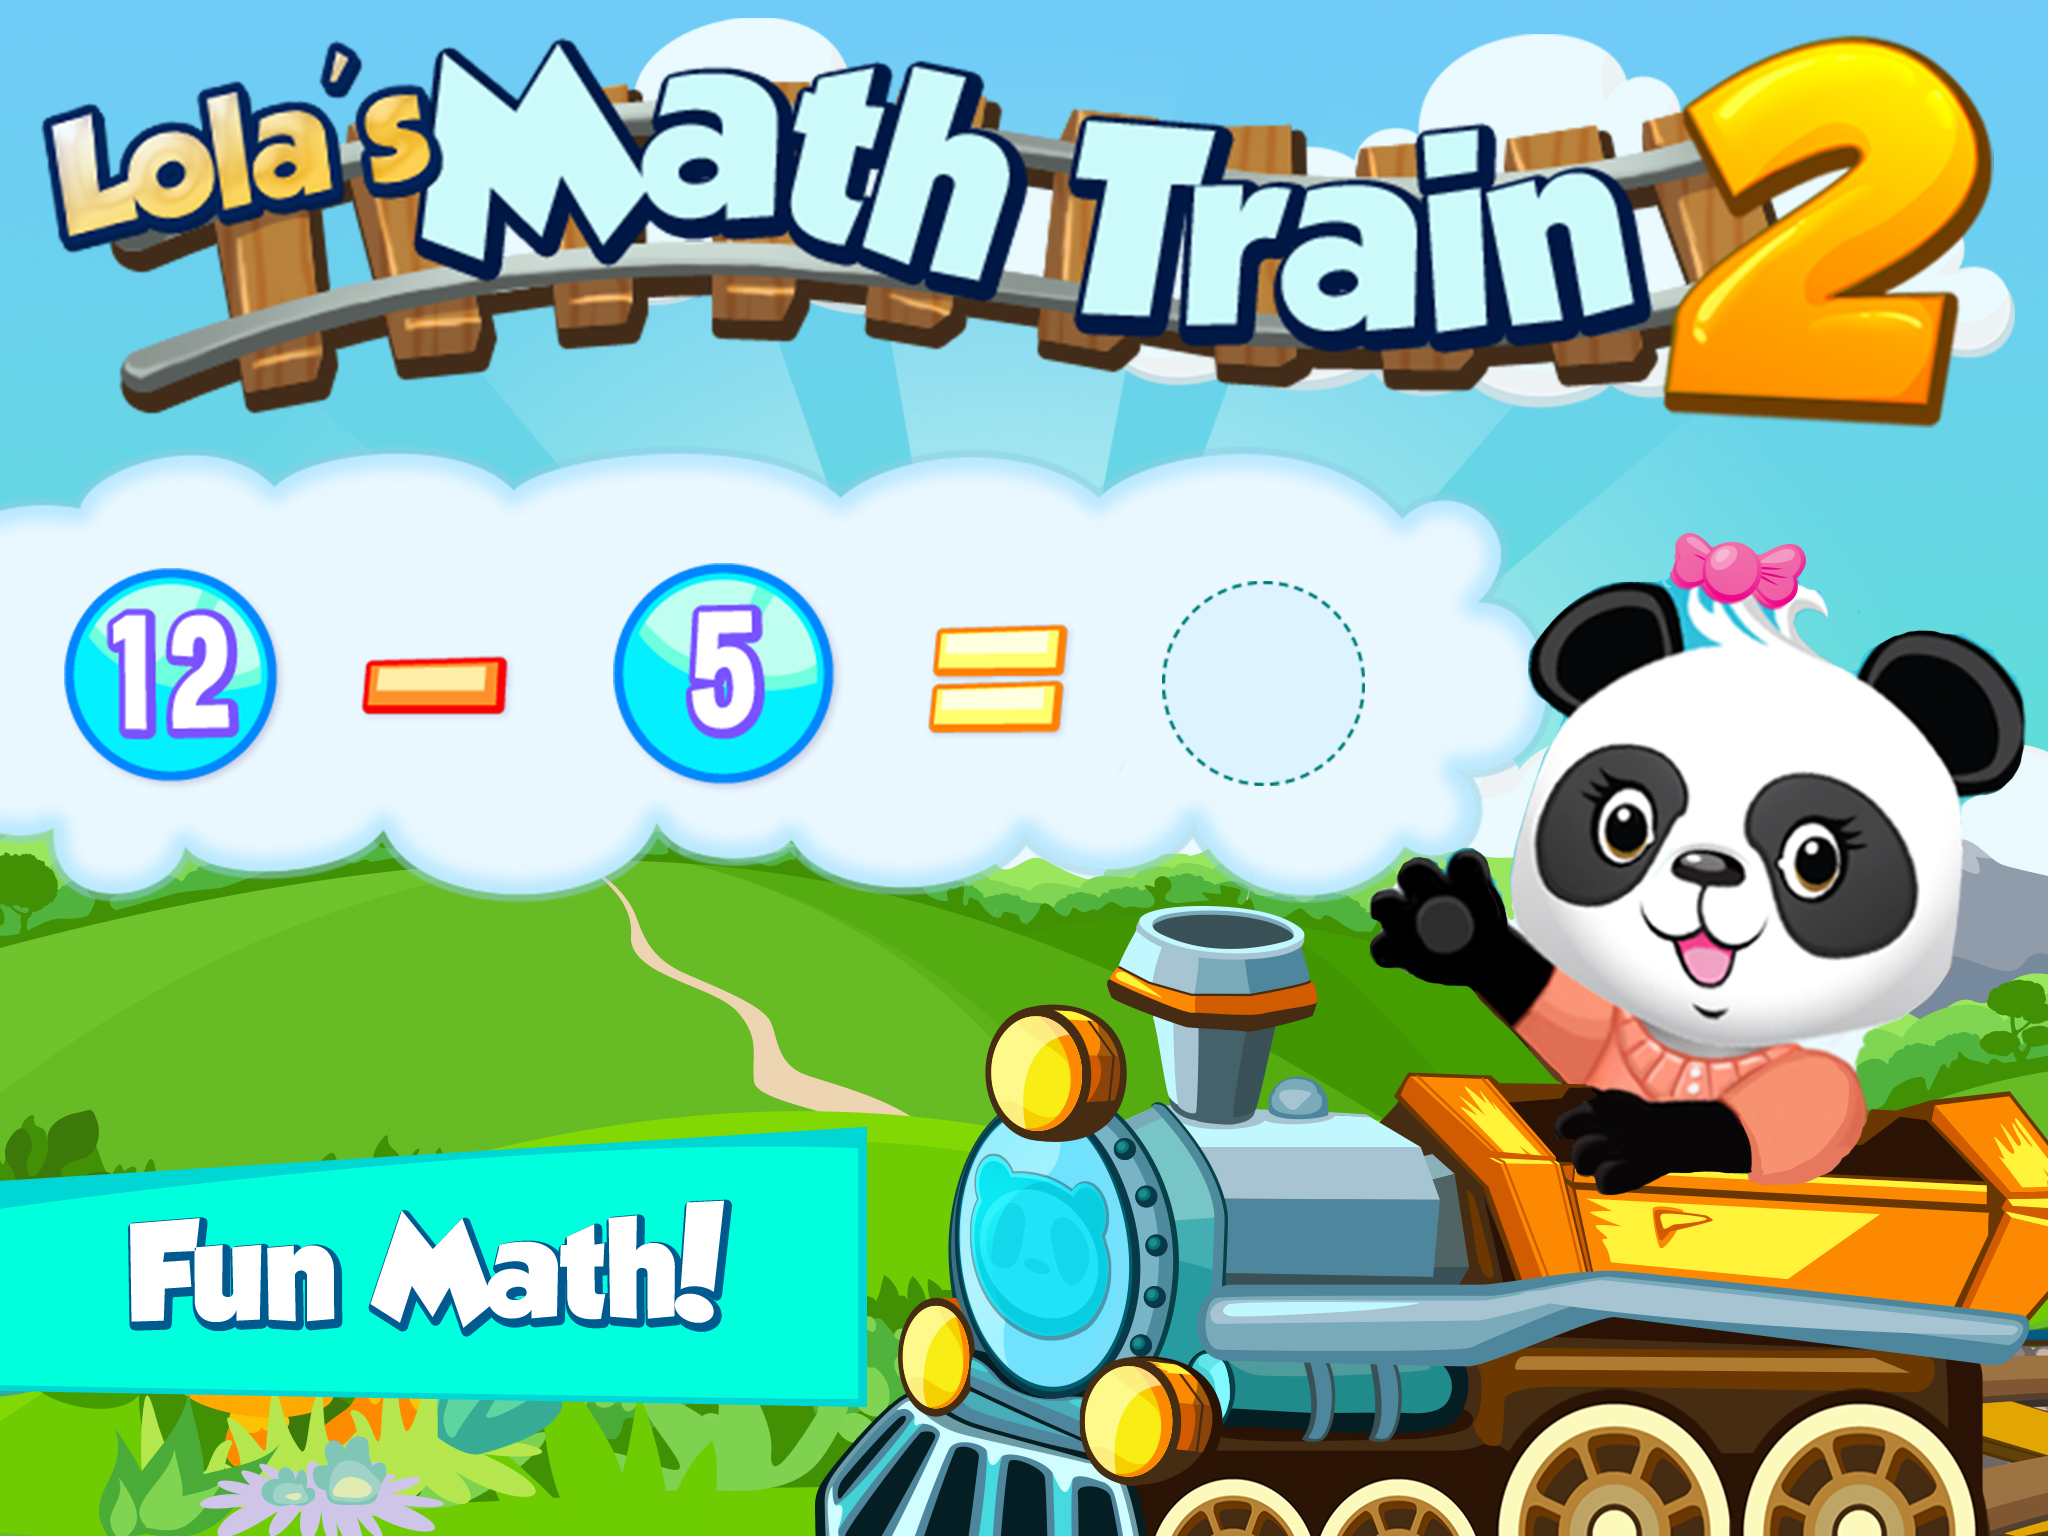 Lola's Math Train 2 (Full version)